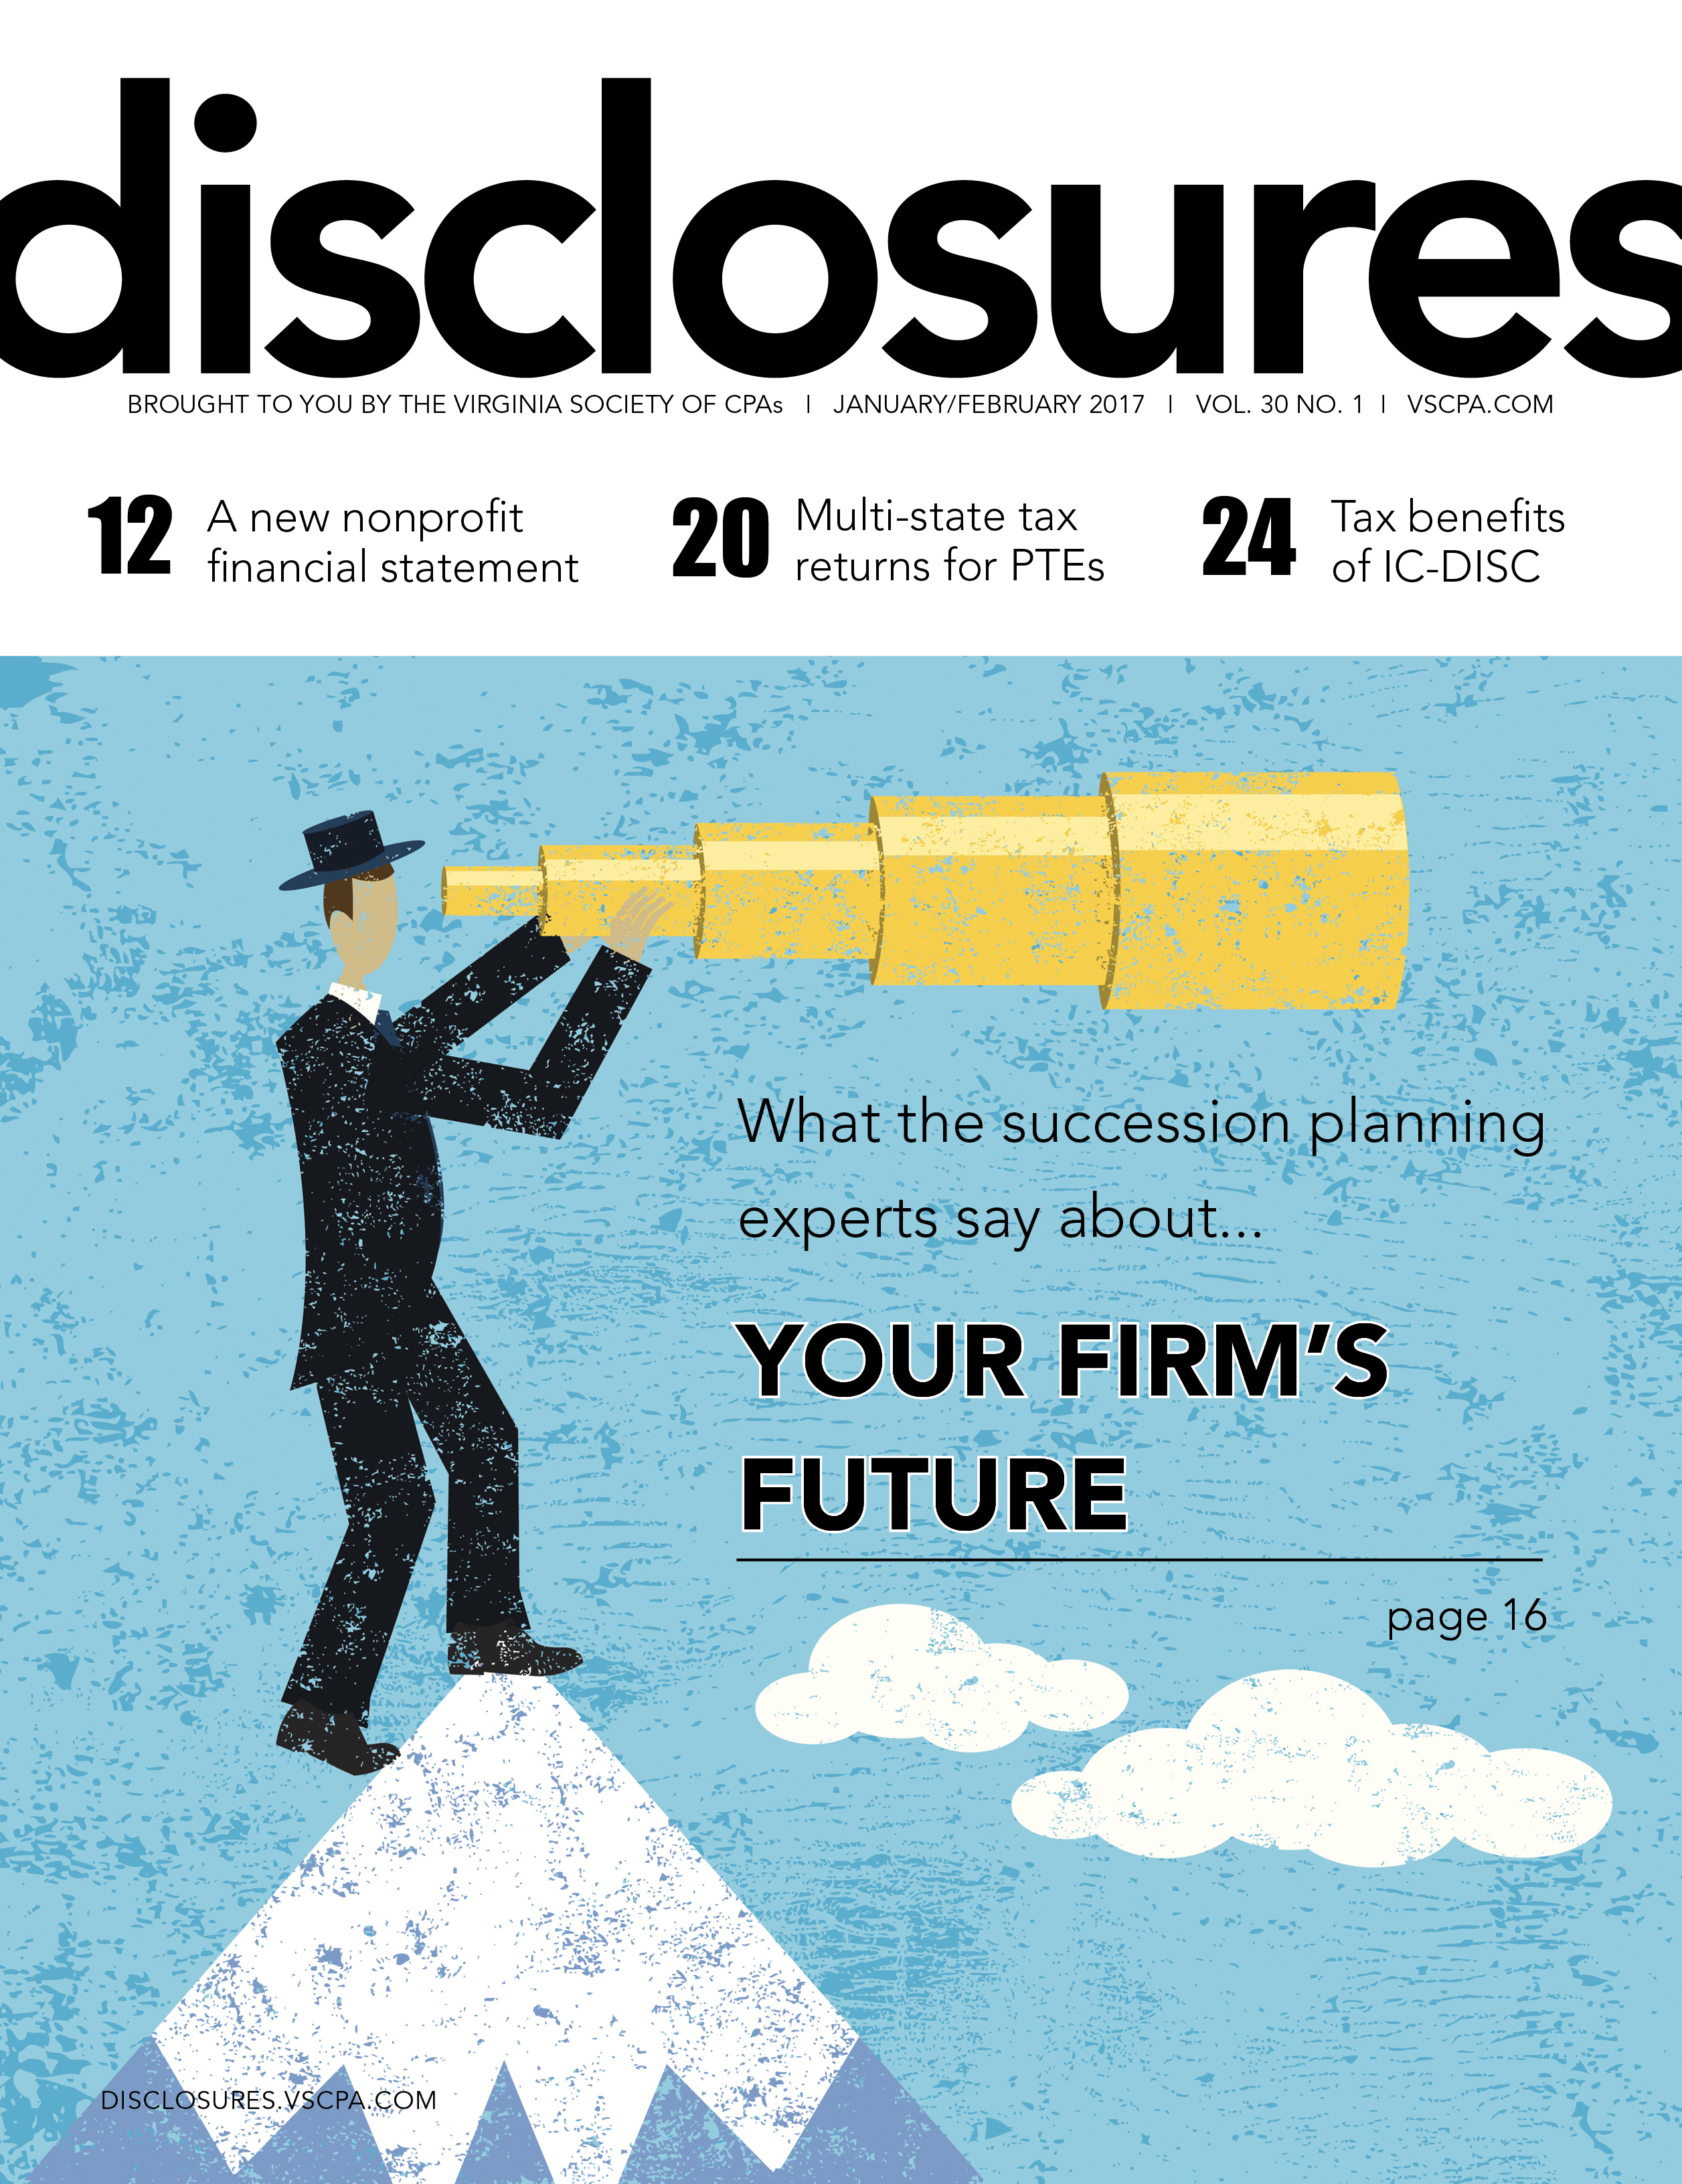 Cover of January/February 2017 issue of Disclosures